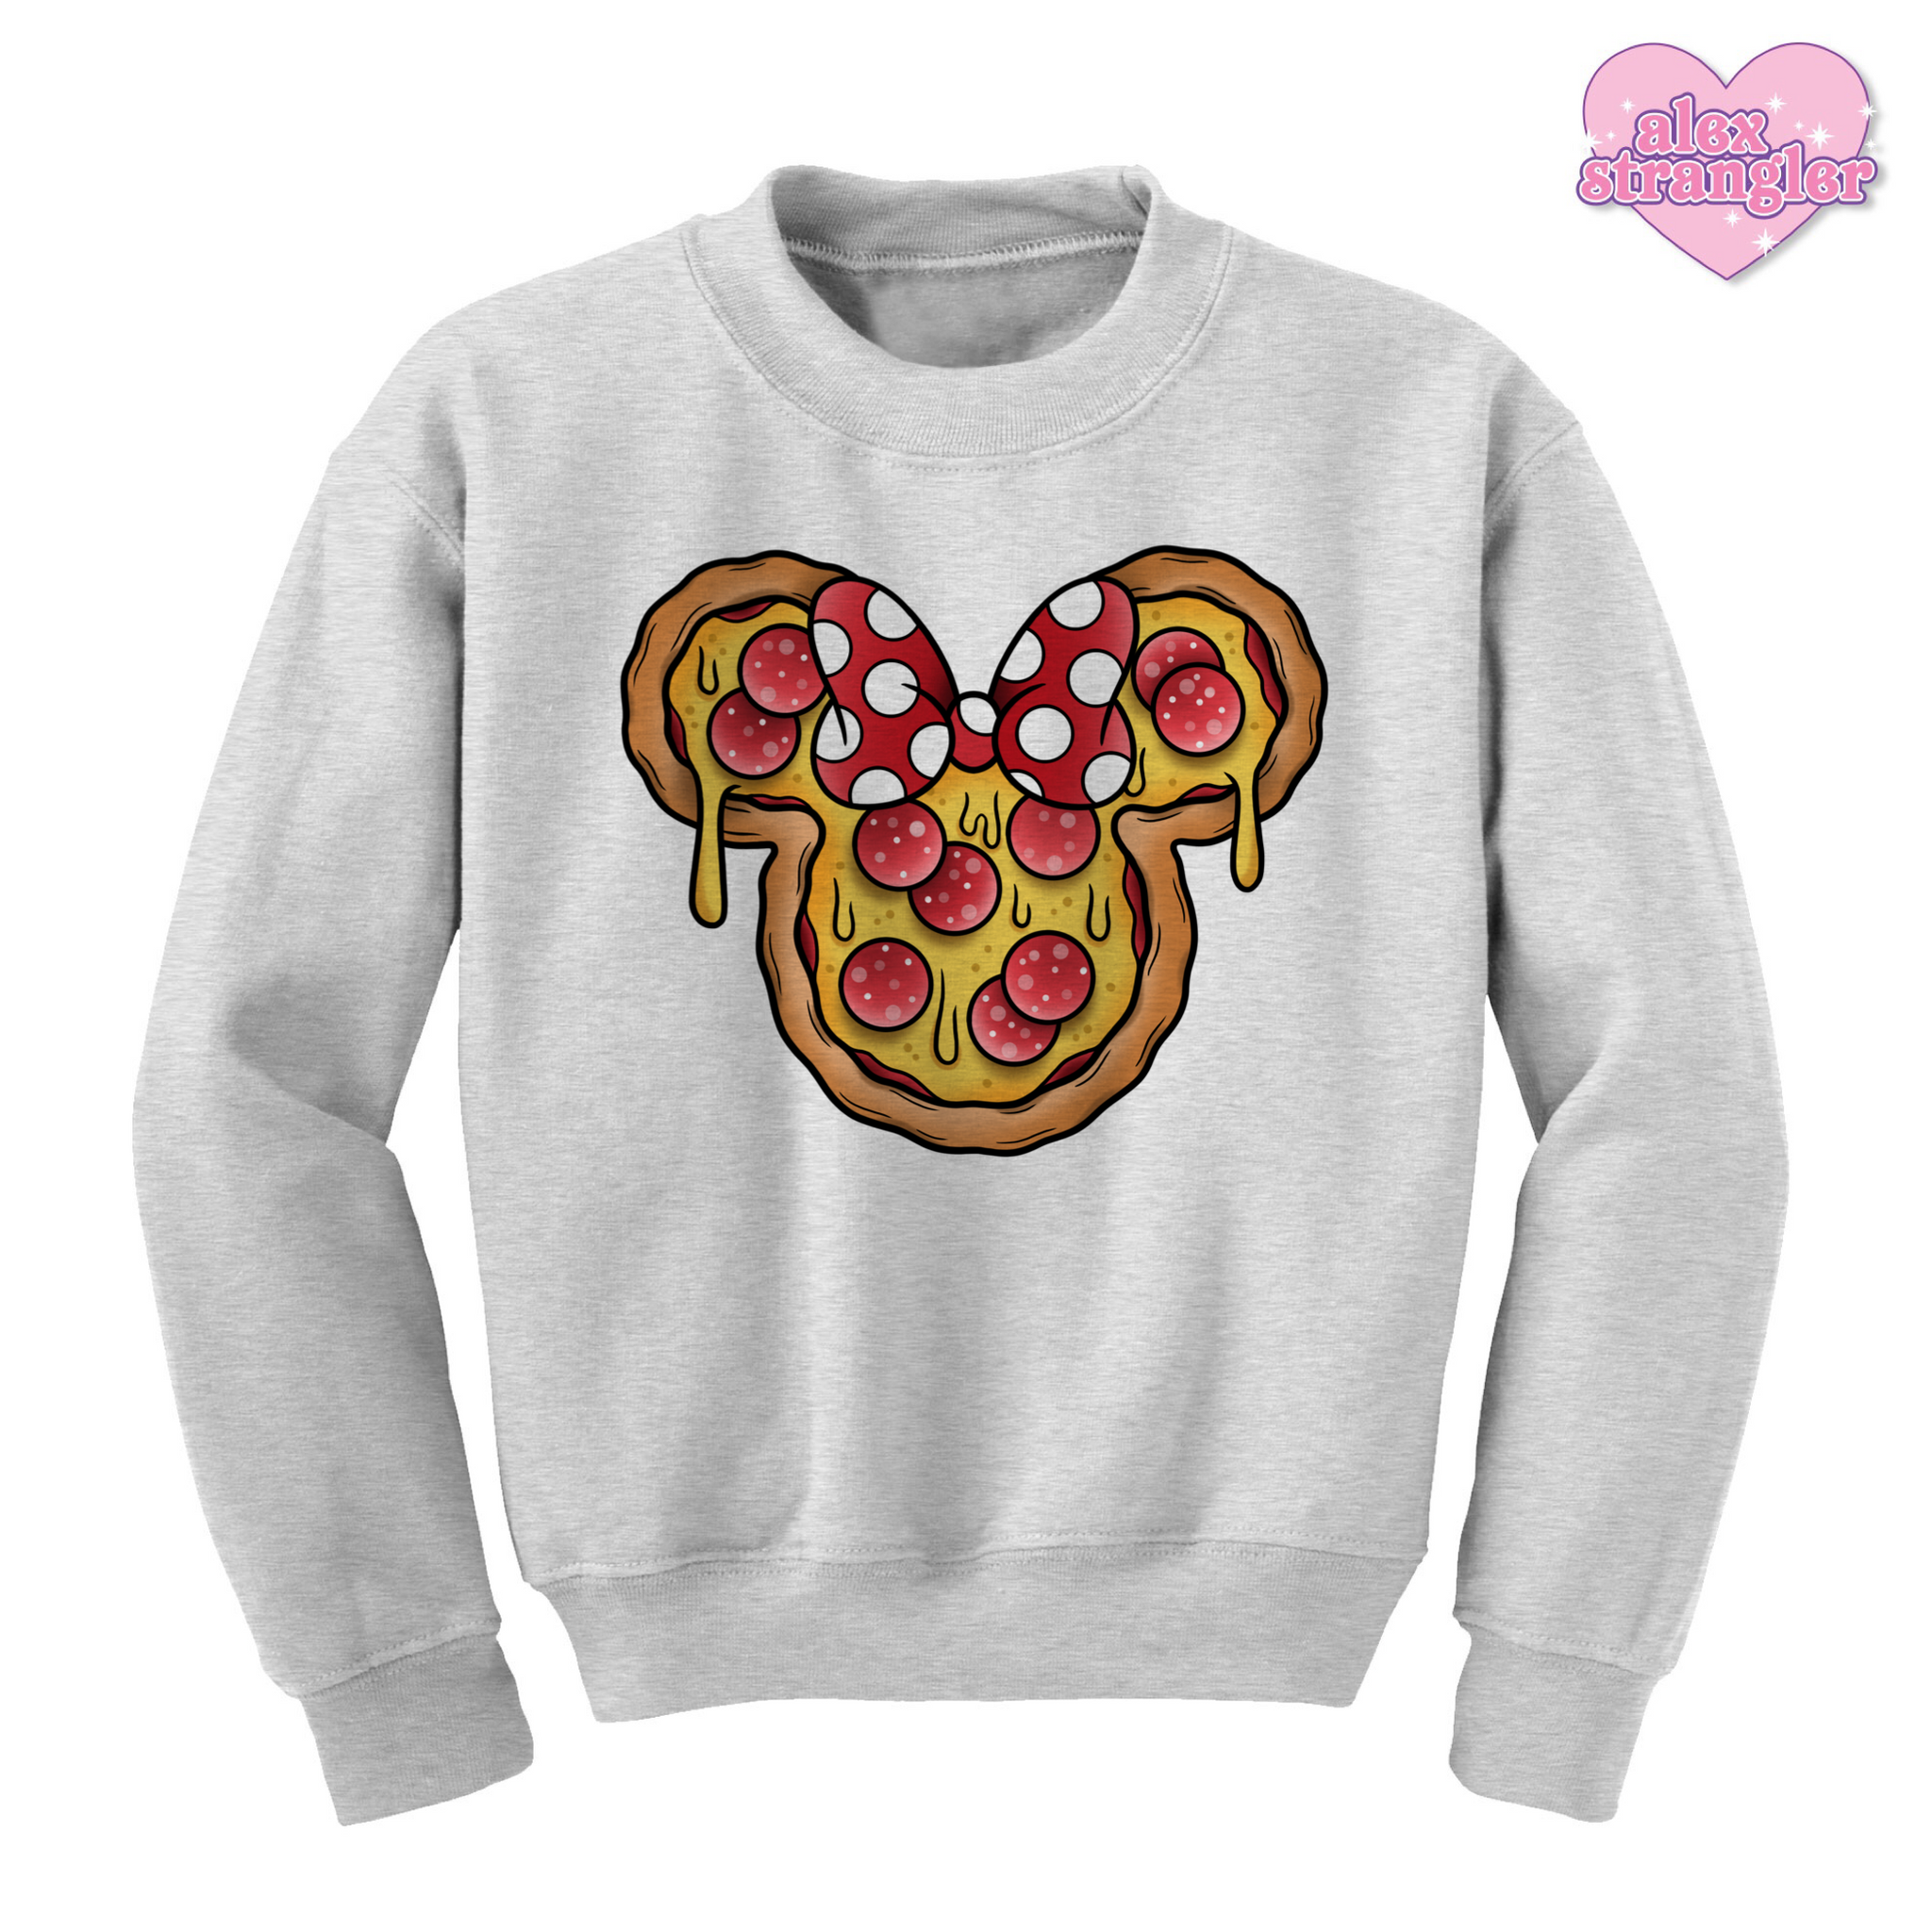 Mrs. Pizza Mouse - Unisex Crewneck Sweatshirt